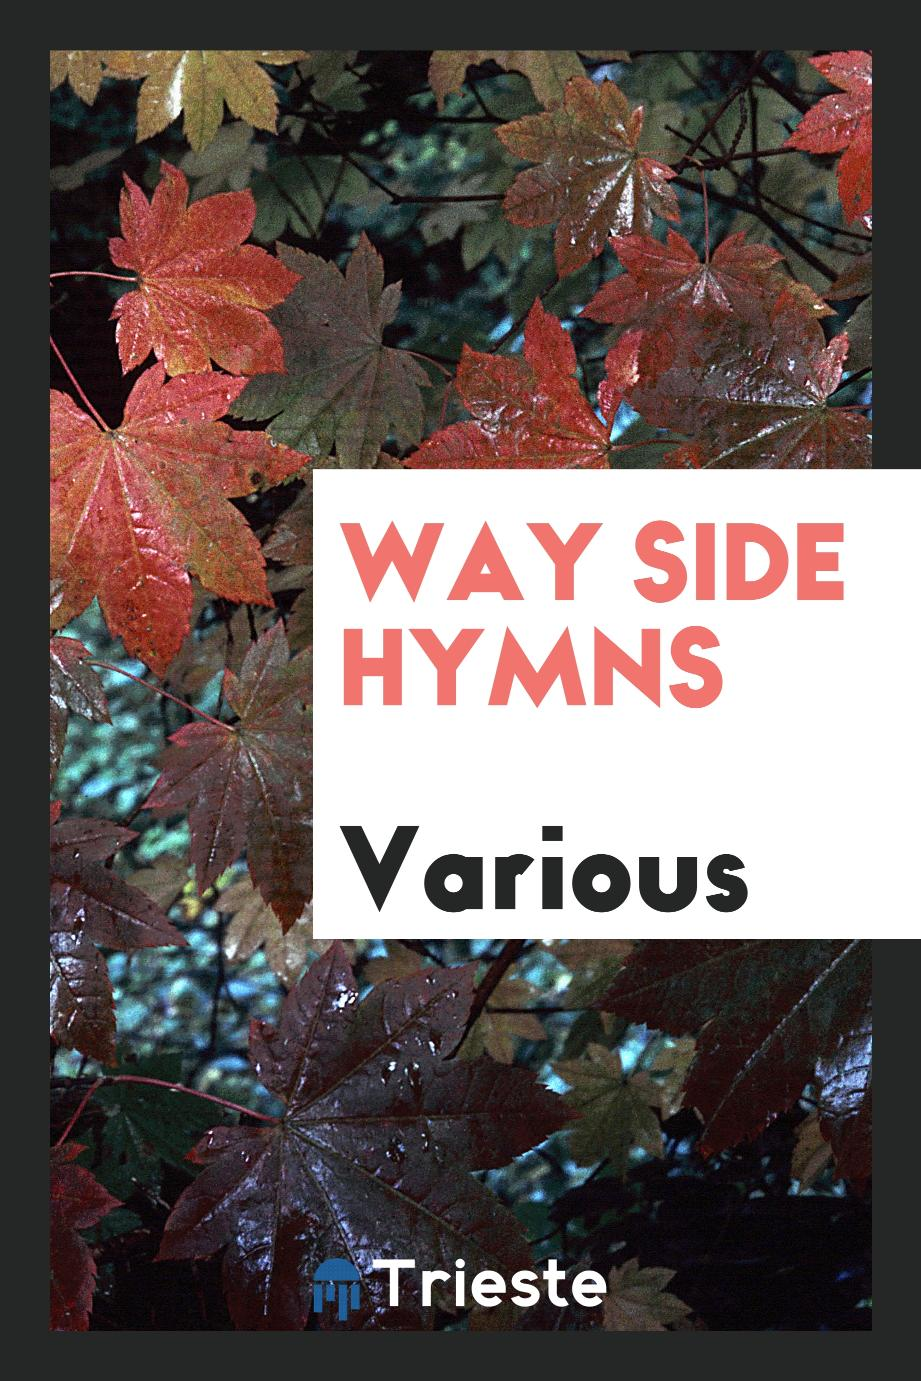 Way Side Hymns